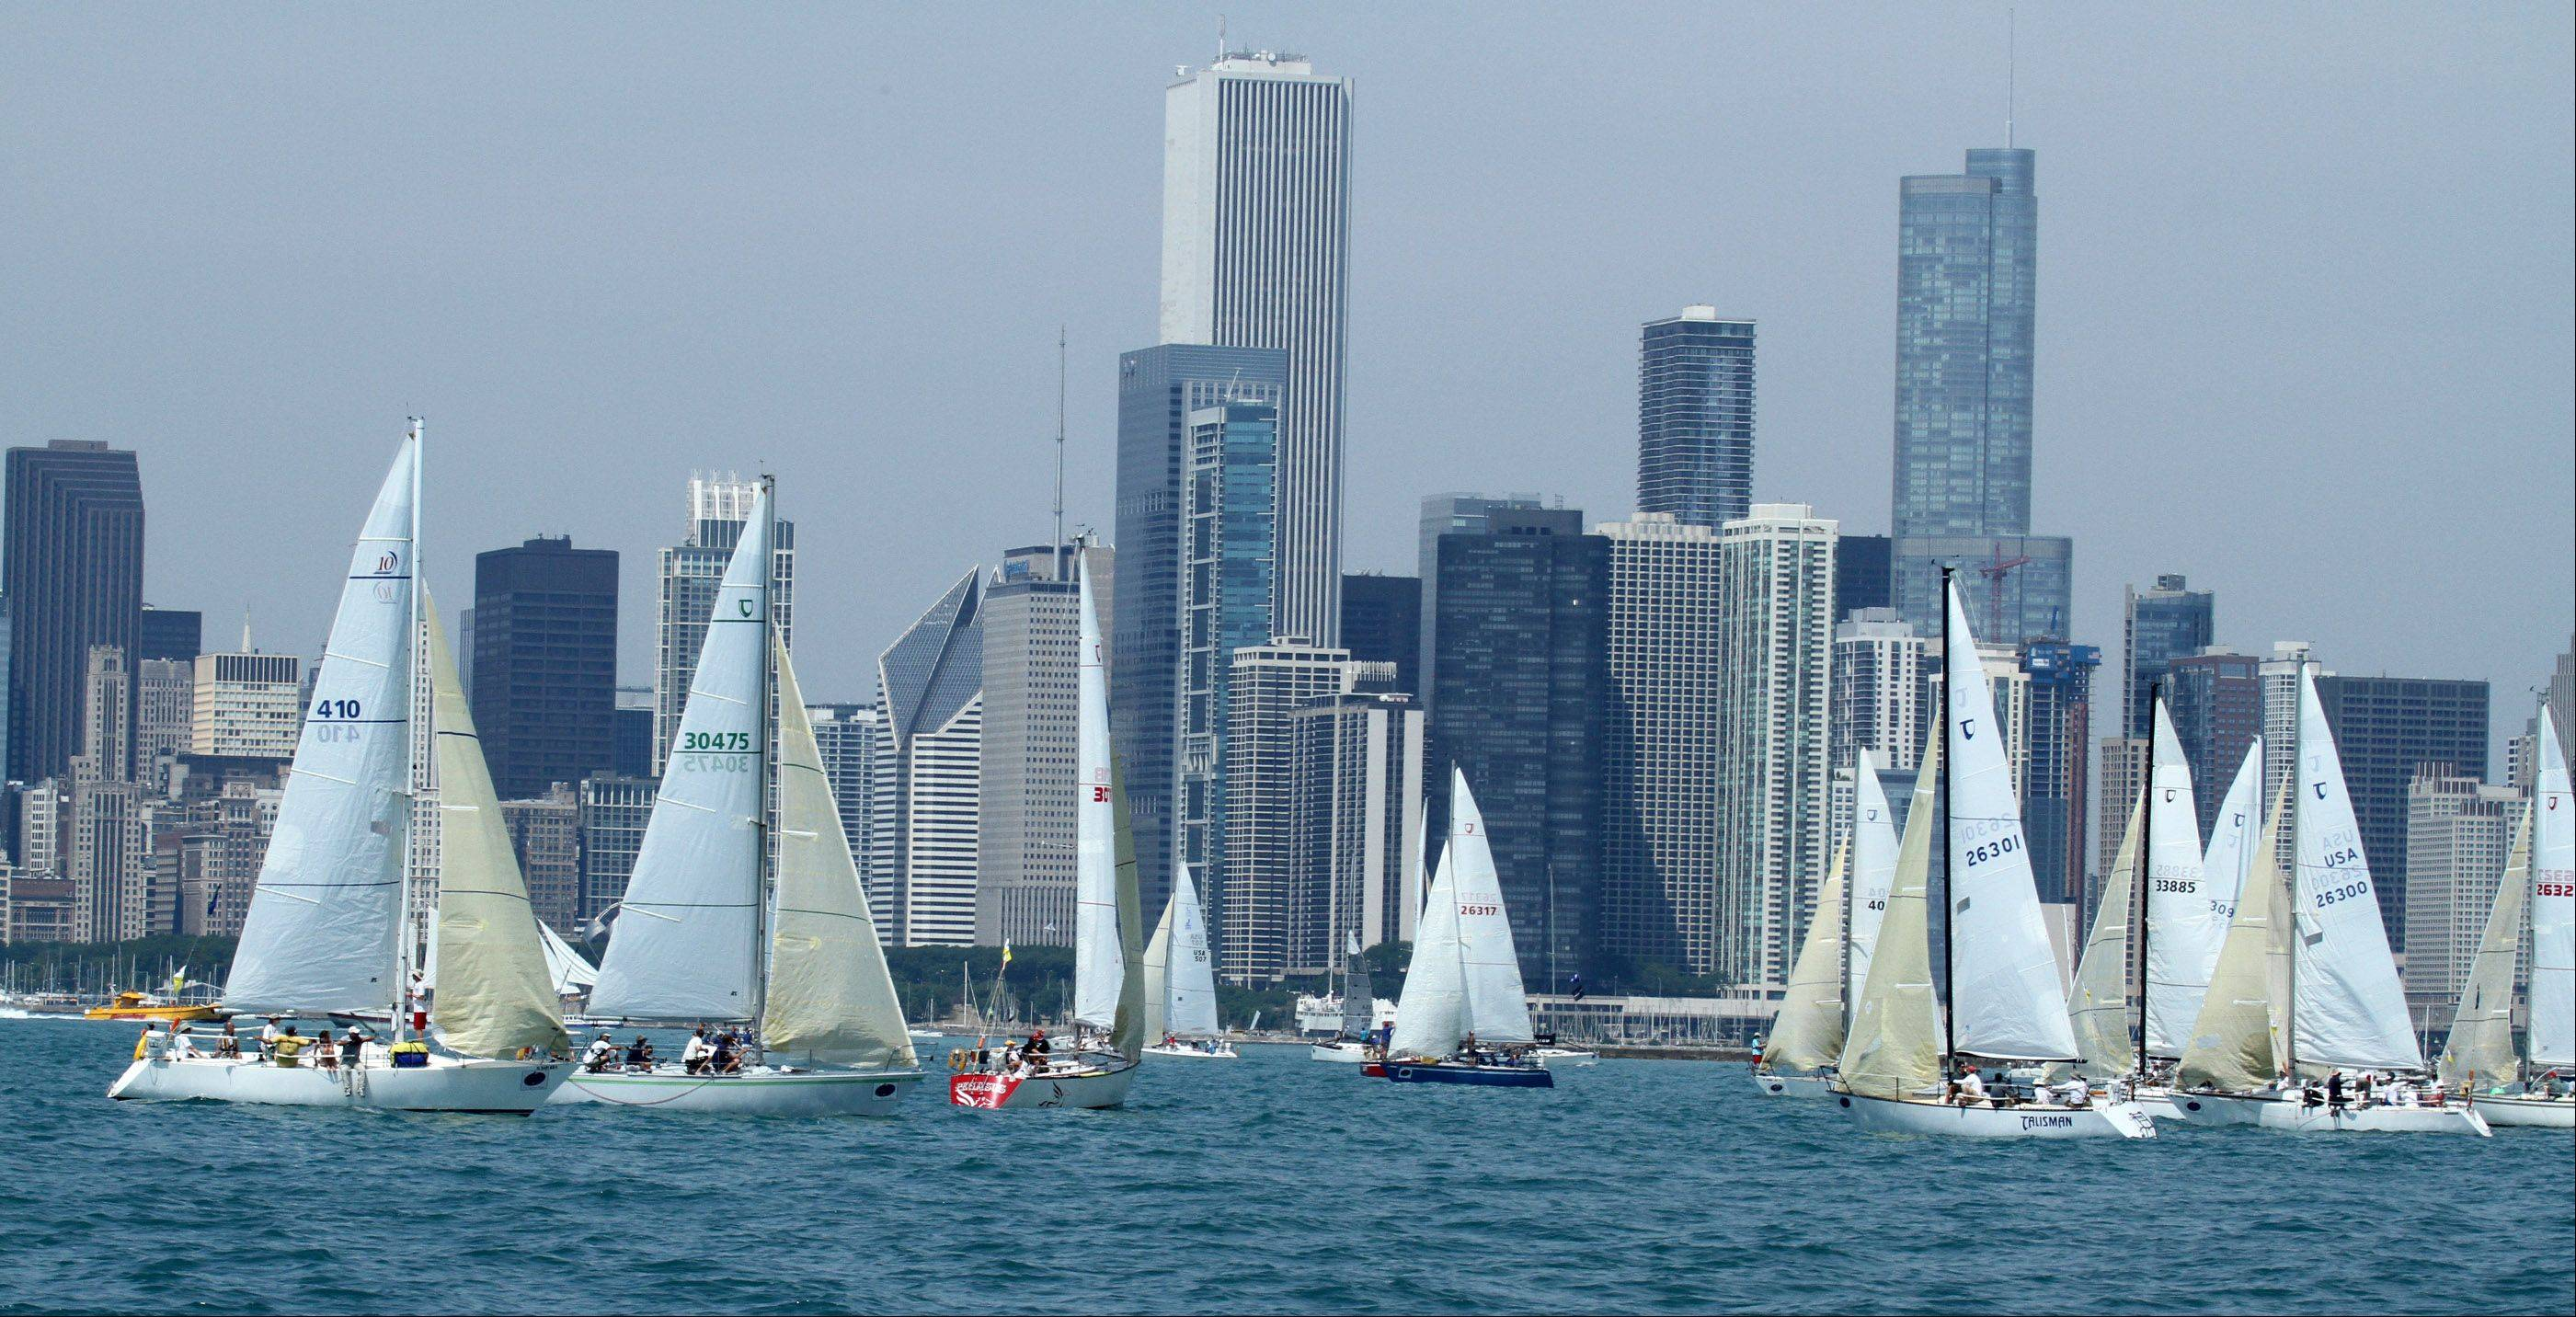 The start of the 104th Chicago Yacht Club Race to Mackinac on Lake Michigan in Chicago on Saturday, July 21.